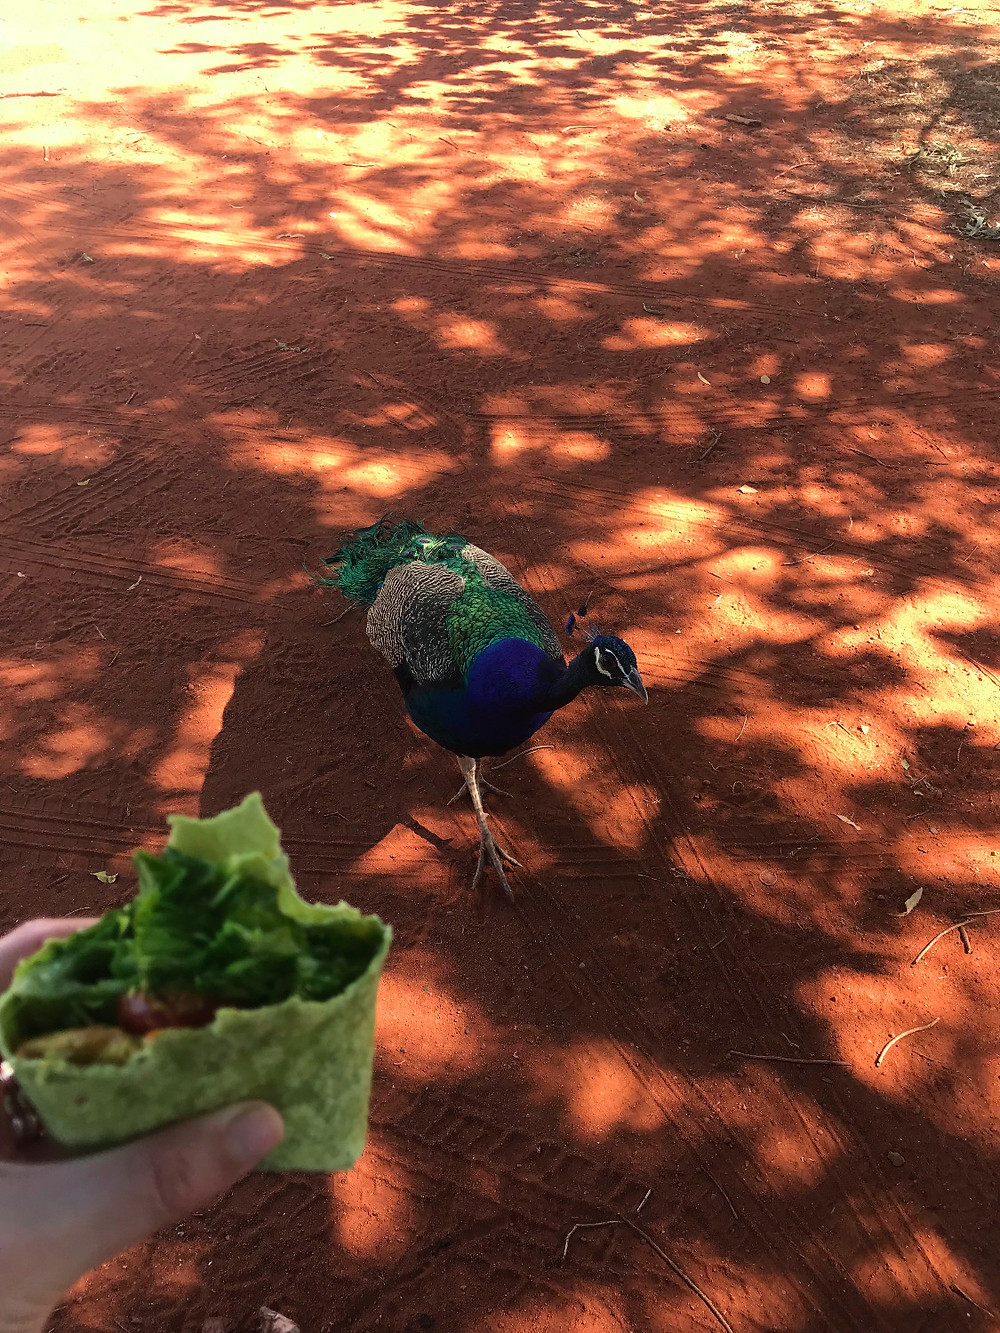 Peacocks being greedy at our Sandfire lunch stop.